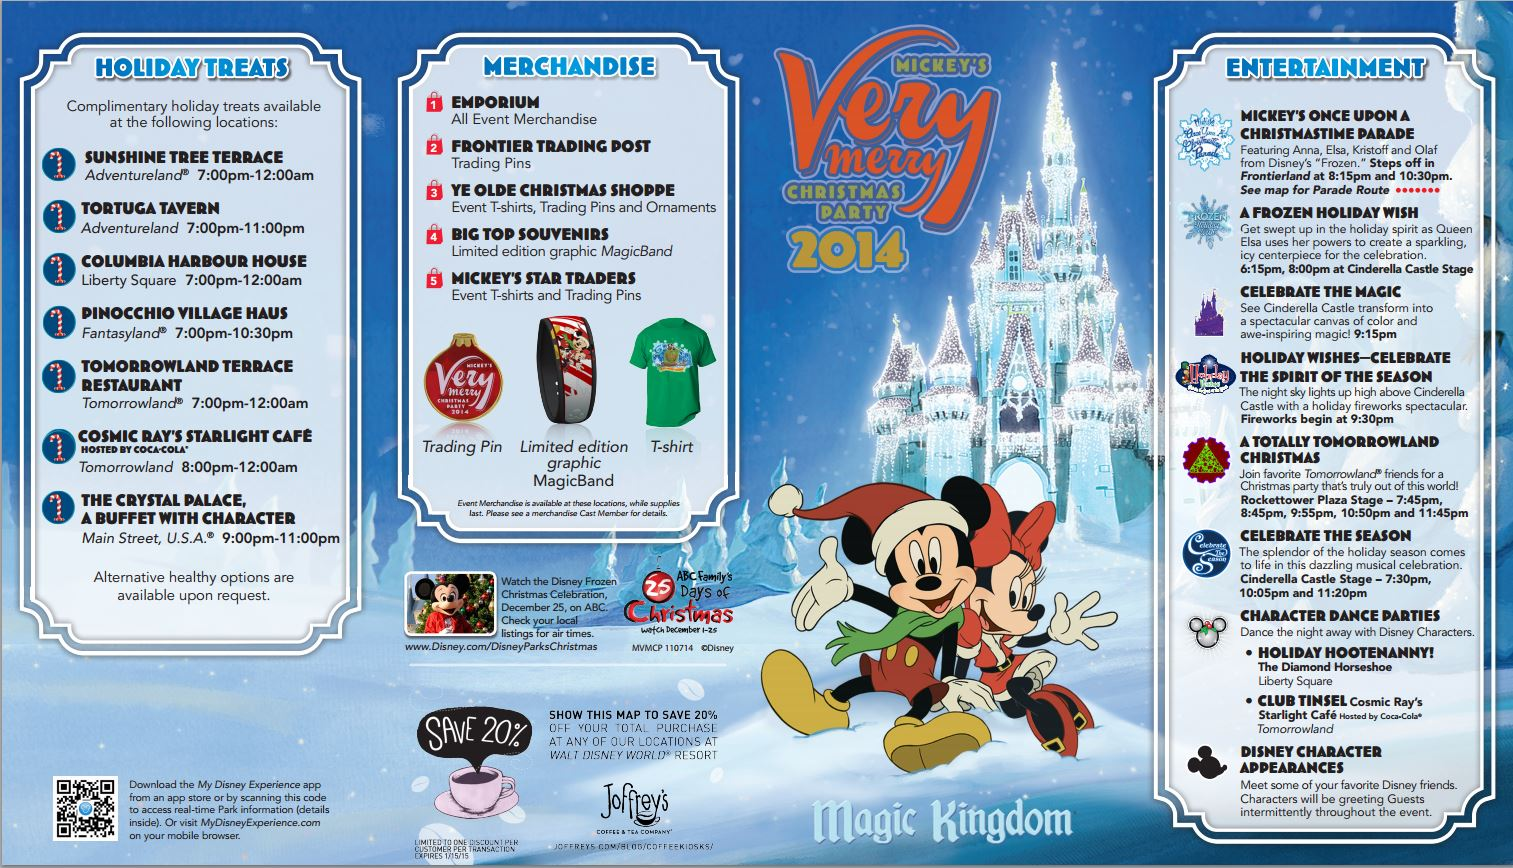 mickeys very merry christmas party 2014 map information and ticket pricing click the images to enlarge this information is accurate as of november 5 - Mickeys Christmas Party Tickets